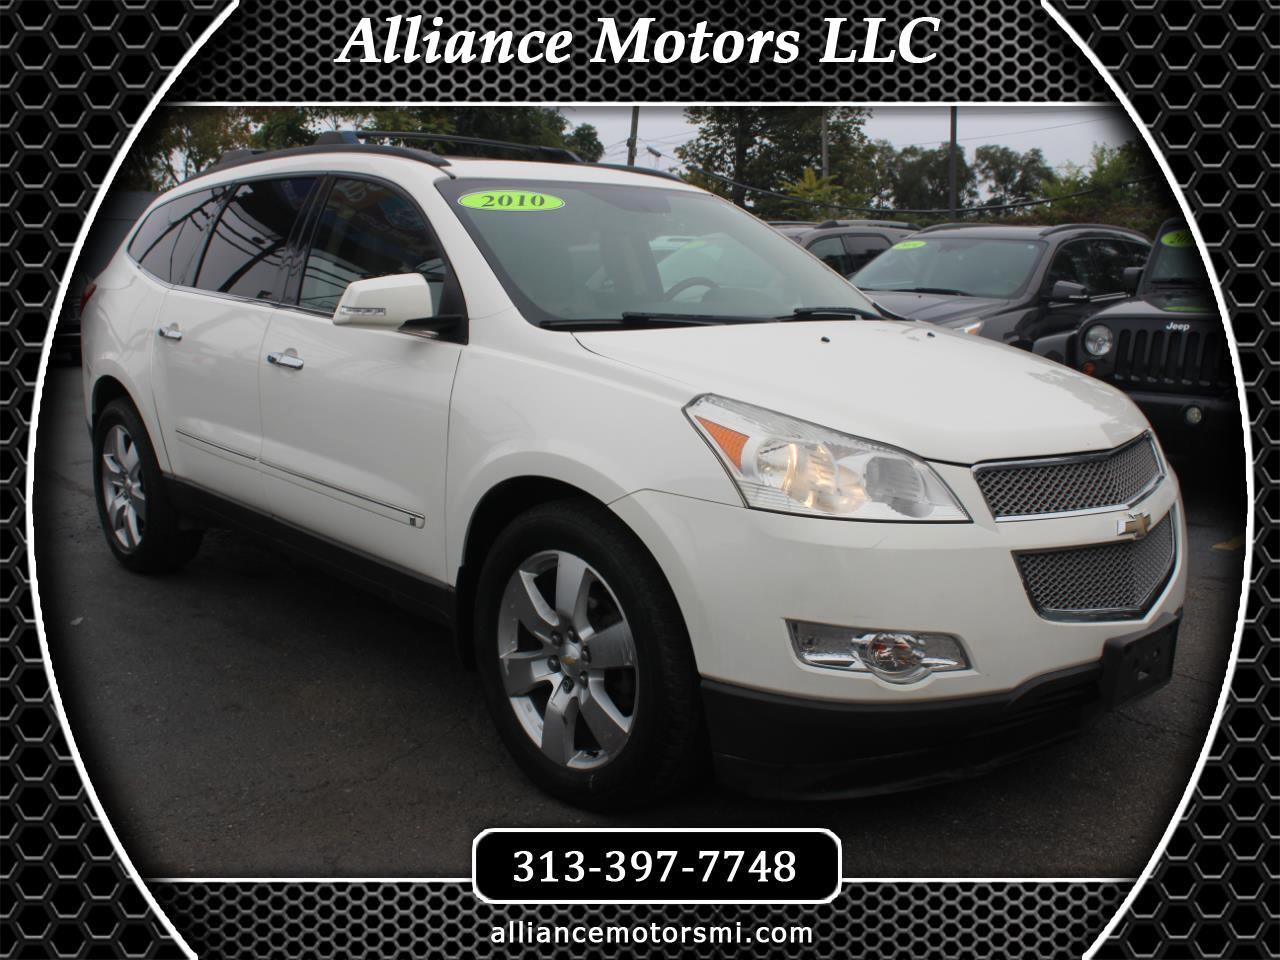 Chevrolet Traverse AWD 4dr LTZ 2010